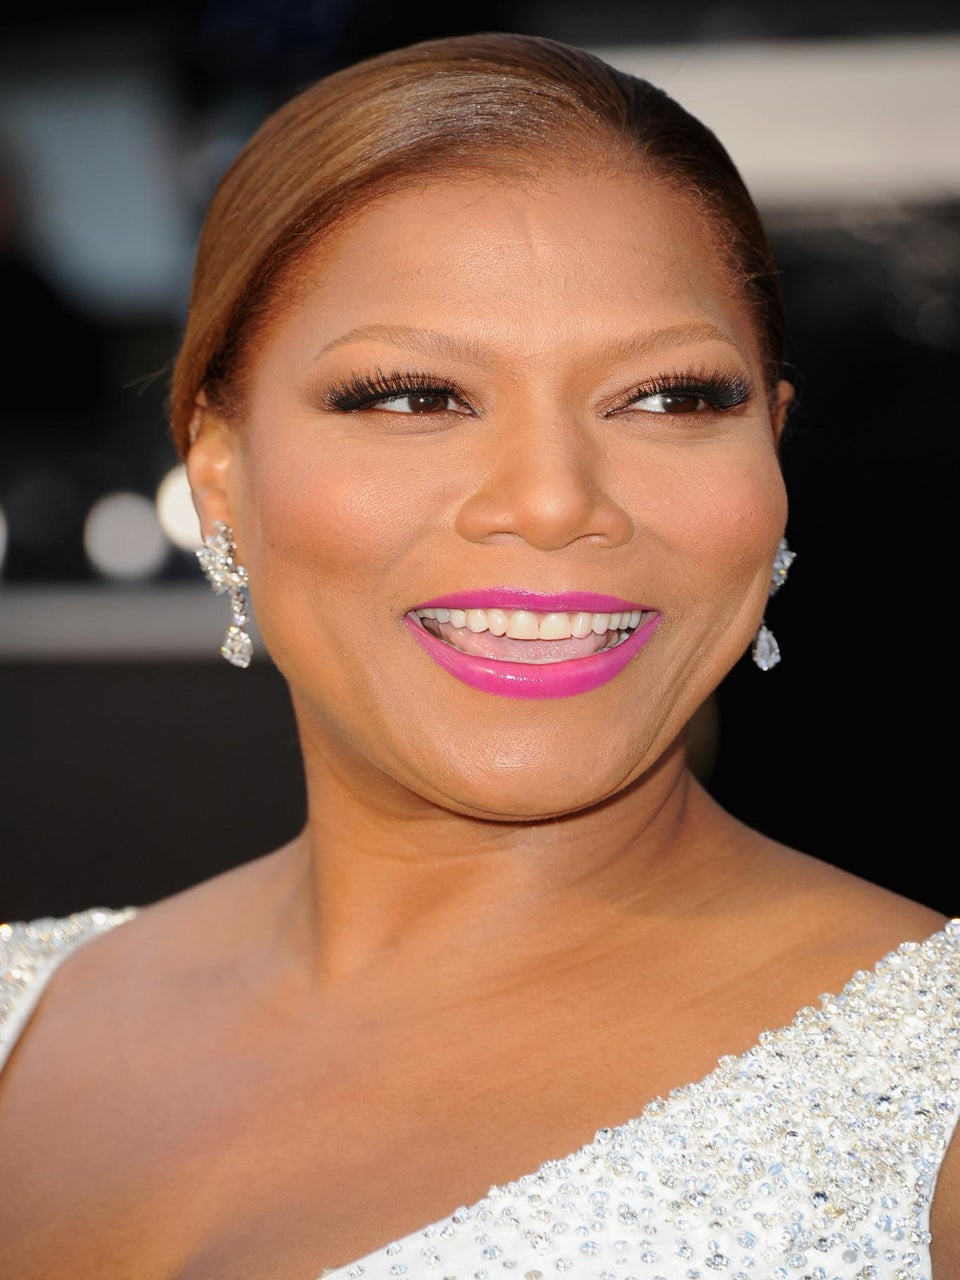 EXCLUSIVE: Queen Latifah on A Possible 'Living Single' Reunion